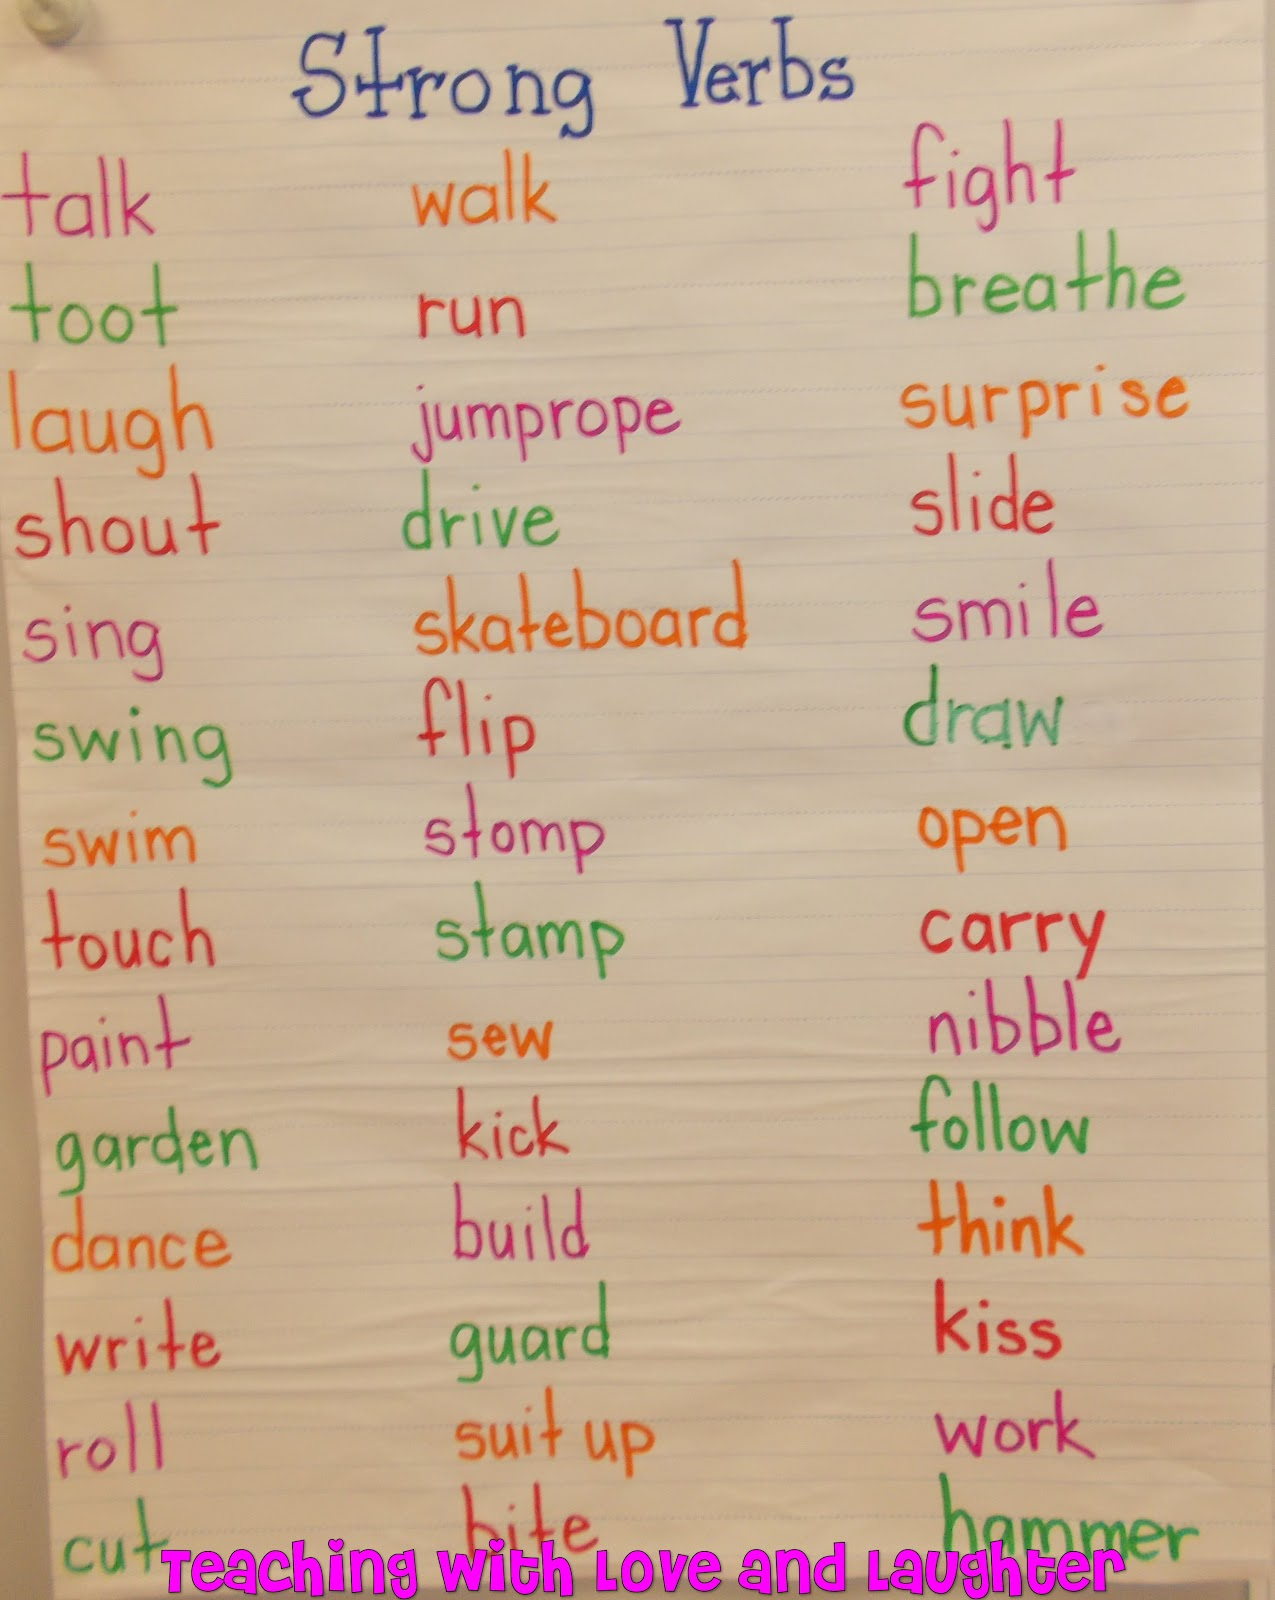 Teaching With Love And Laughter A Week Of Strong Verbs